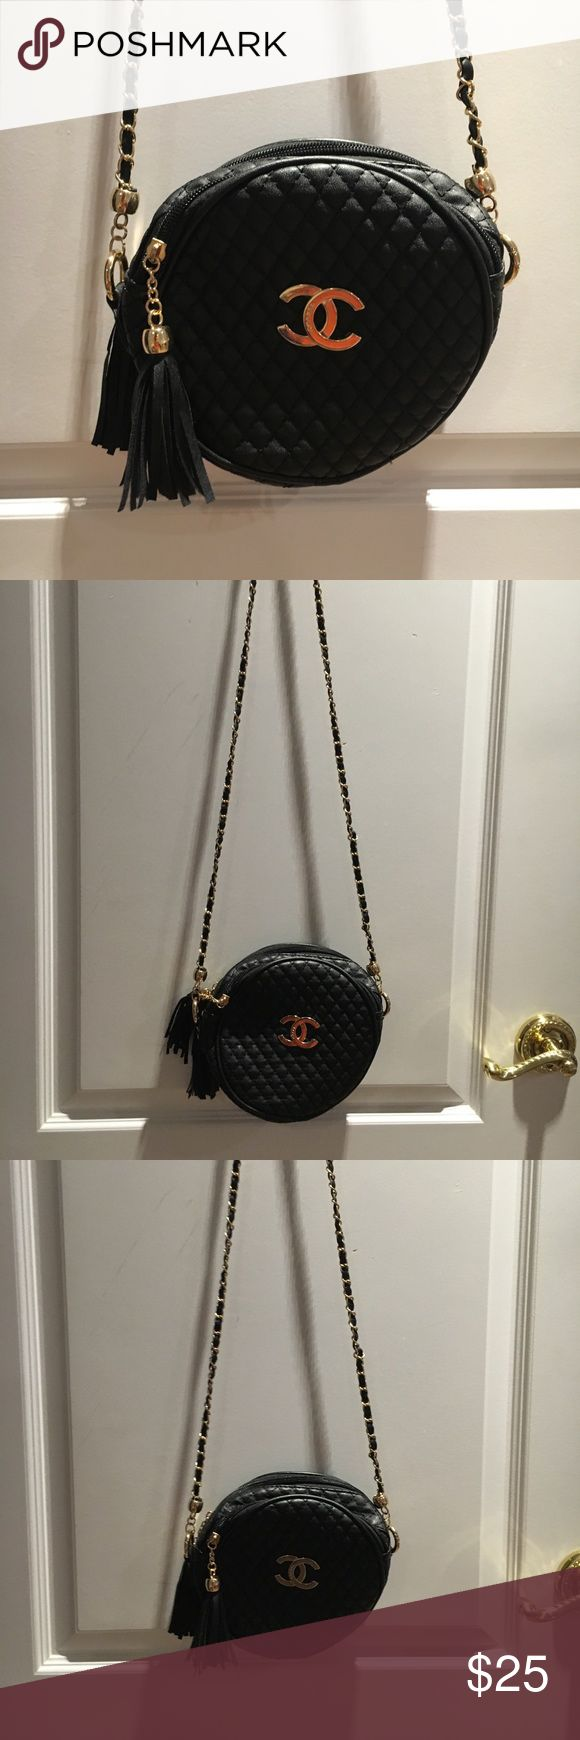 BLACK CHANEL PURSE black Chanel purse with fringe. Looks real but isn't. In perfect condition. Gold Chanel logo in middle. Long straps. Bags Crossbody Bags